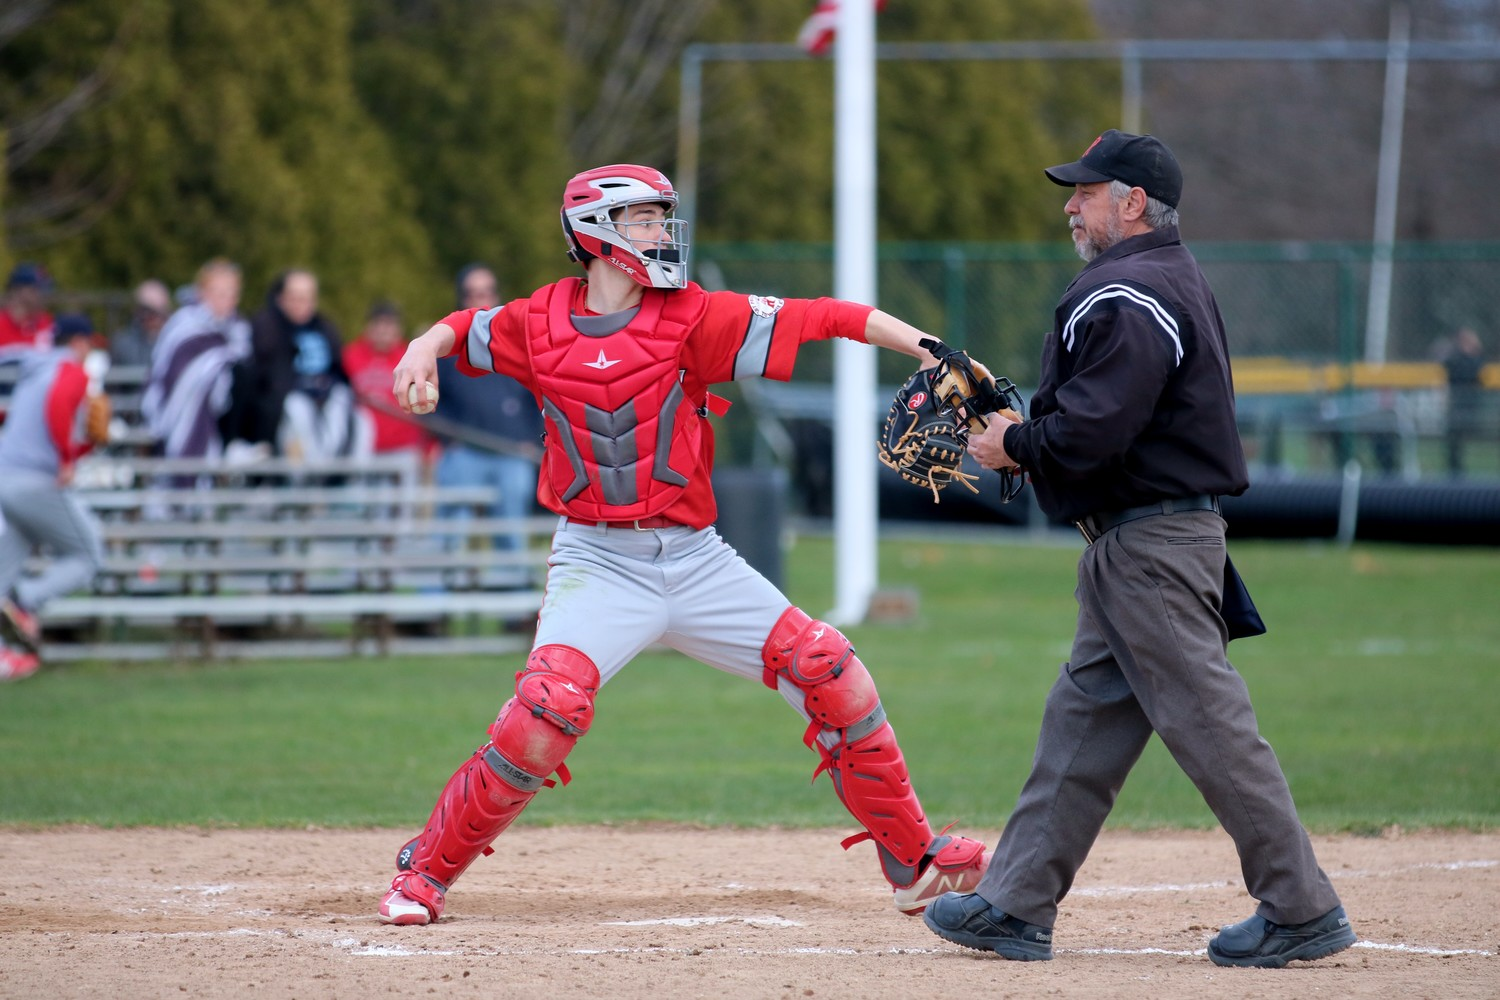 EP catcher Cole Poissant making a throw to second base.  Photo by Paul Tumidajski.